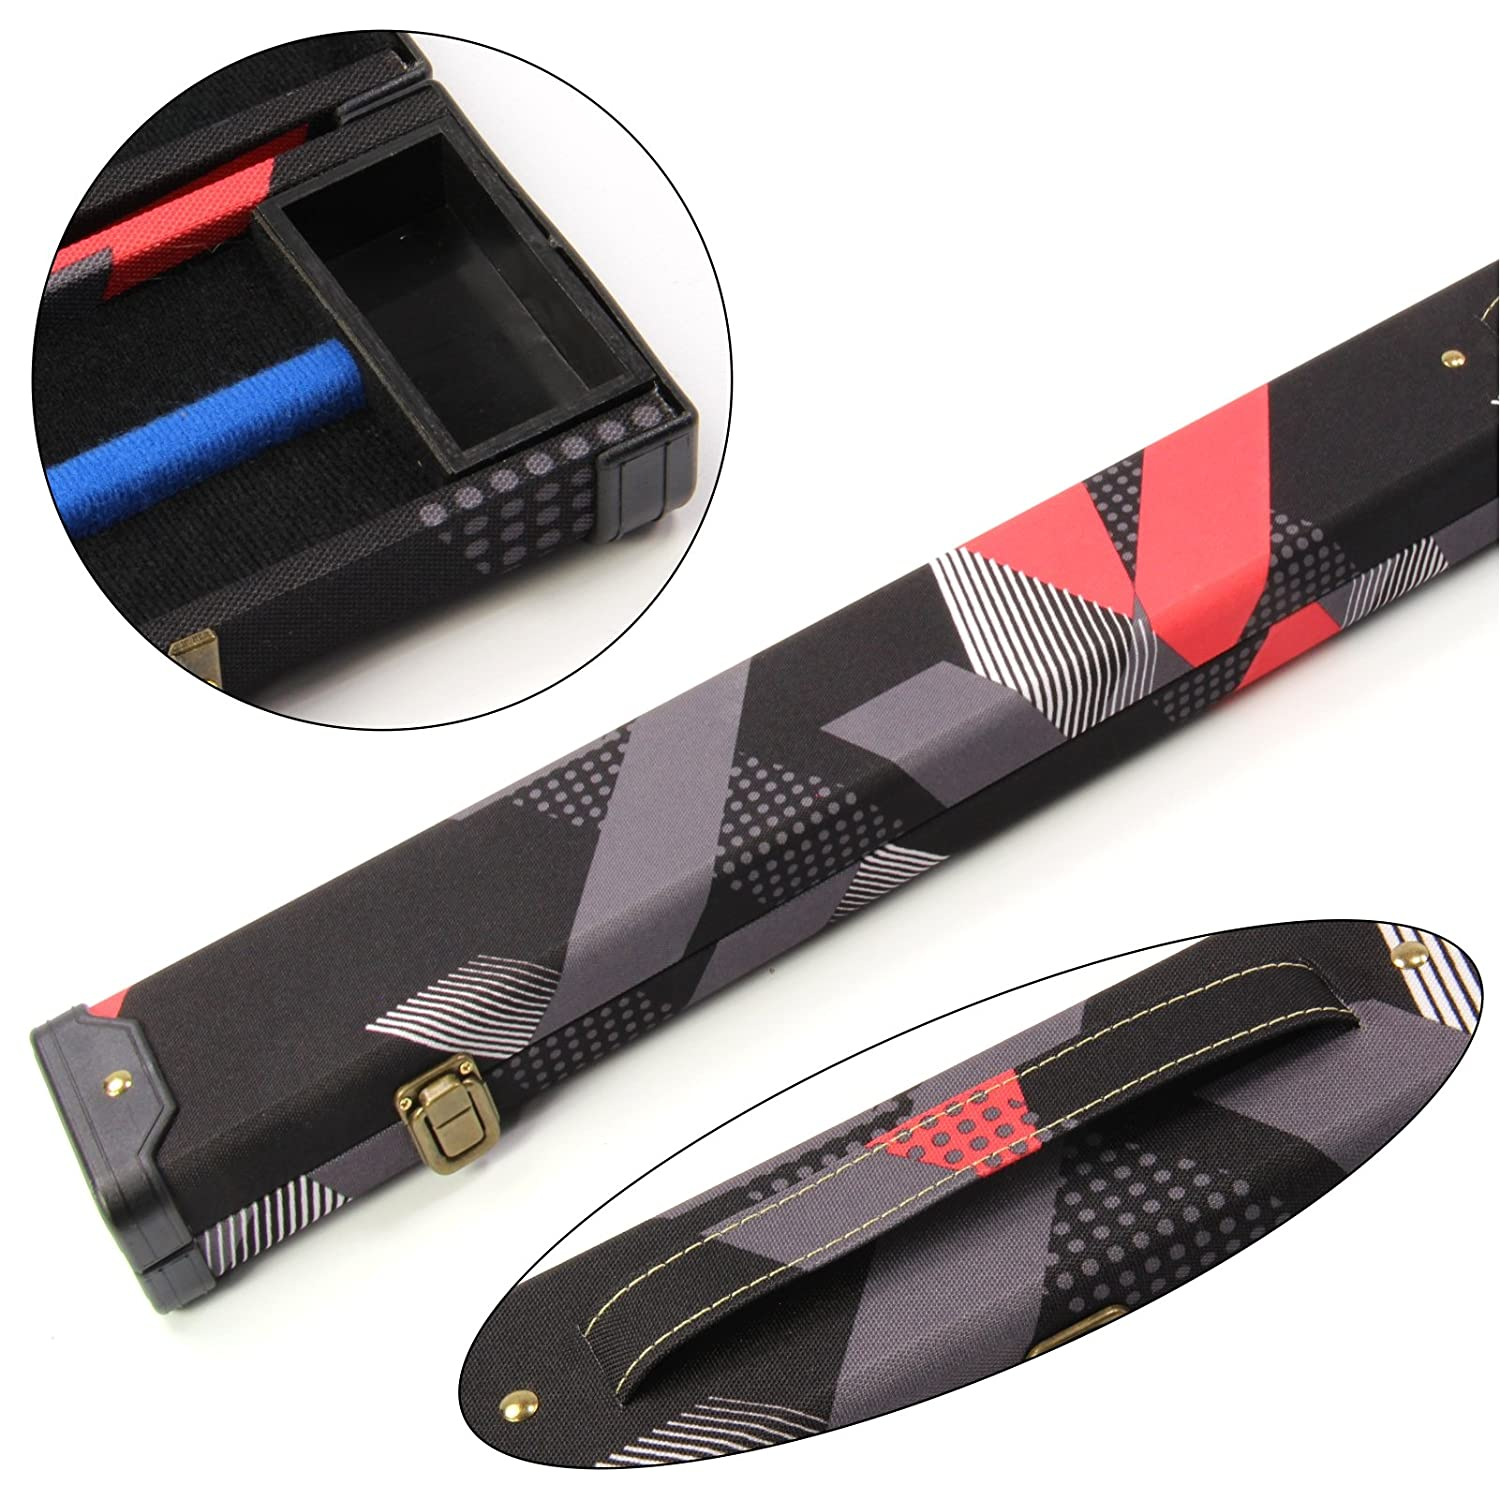 2 Cue 80s RED & BLACK 1PC Pool Snooker Cue Case - Holds 2 Cues Funky Chalk